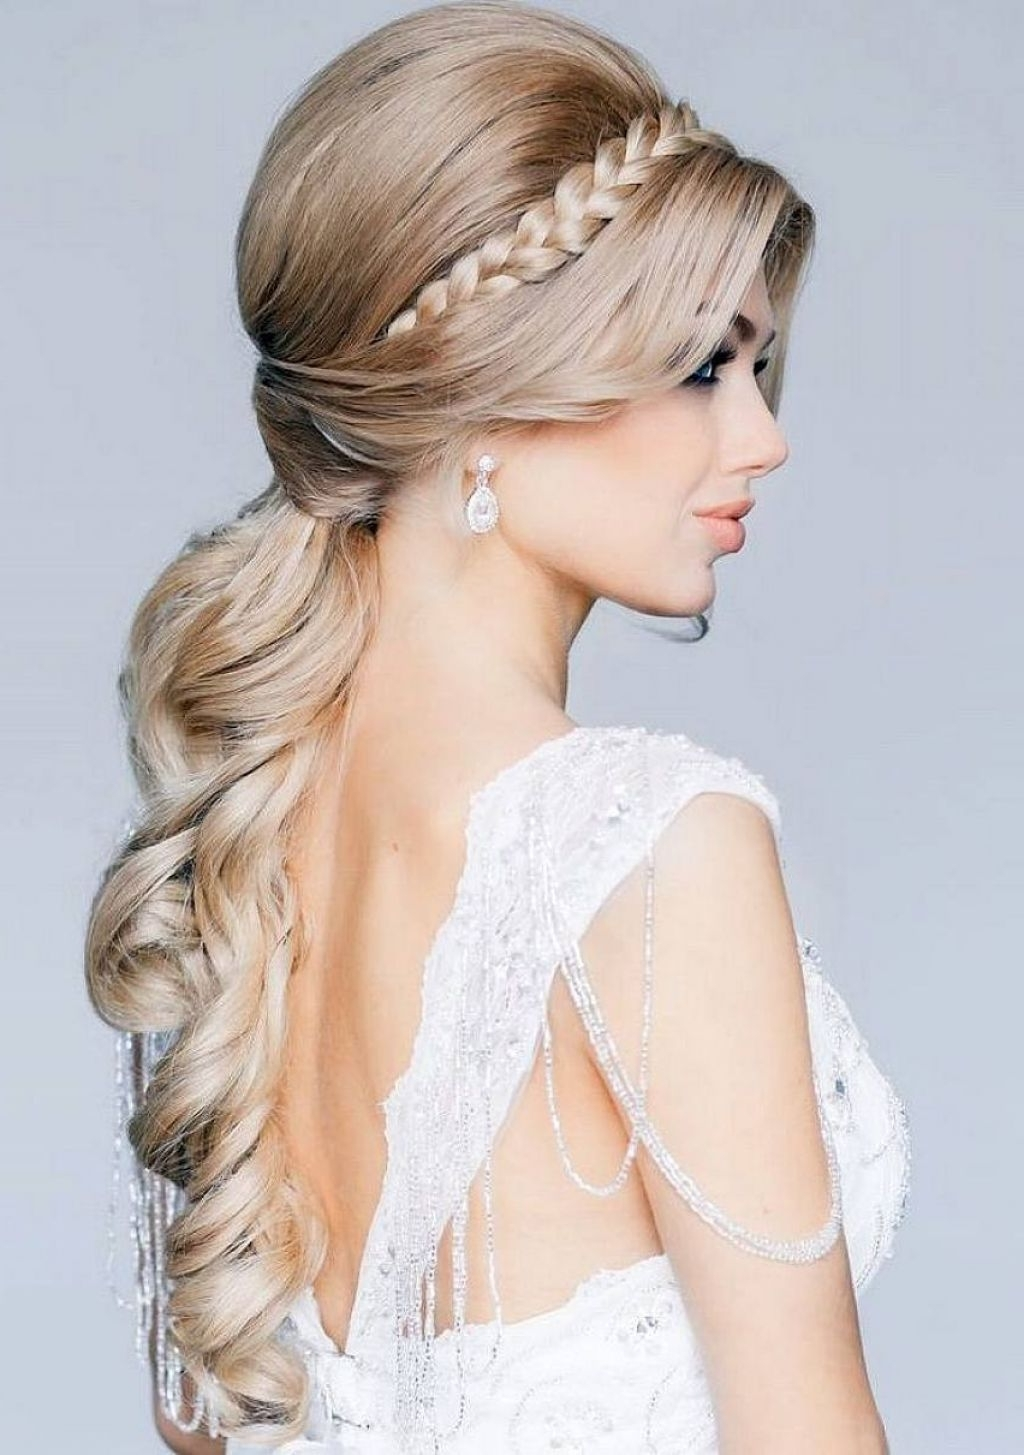 √ 24+ Fresh Wedding Hairstyles For Long Hair: Braids Wedding In Well Known Wedding Updos For Long Hair With Braids (View 1 of 15)